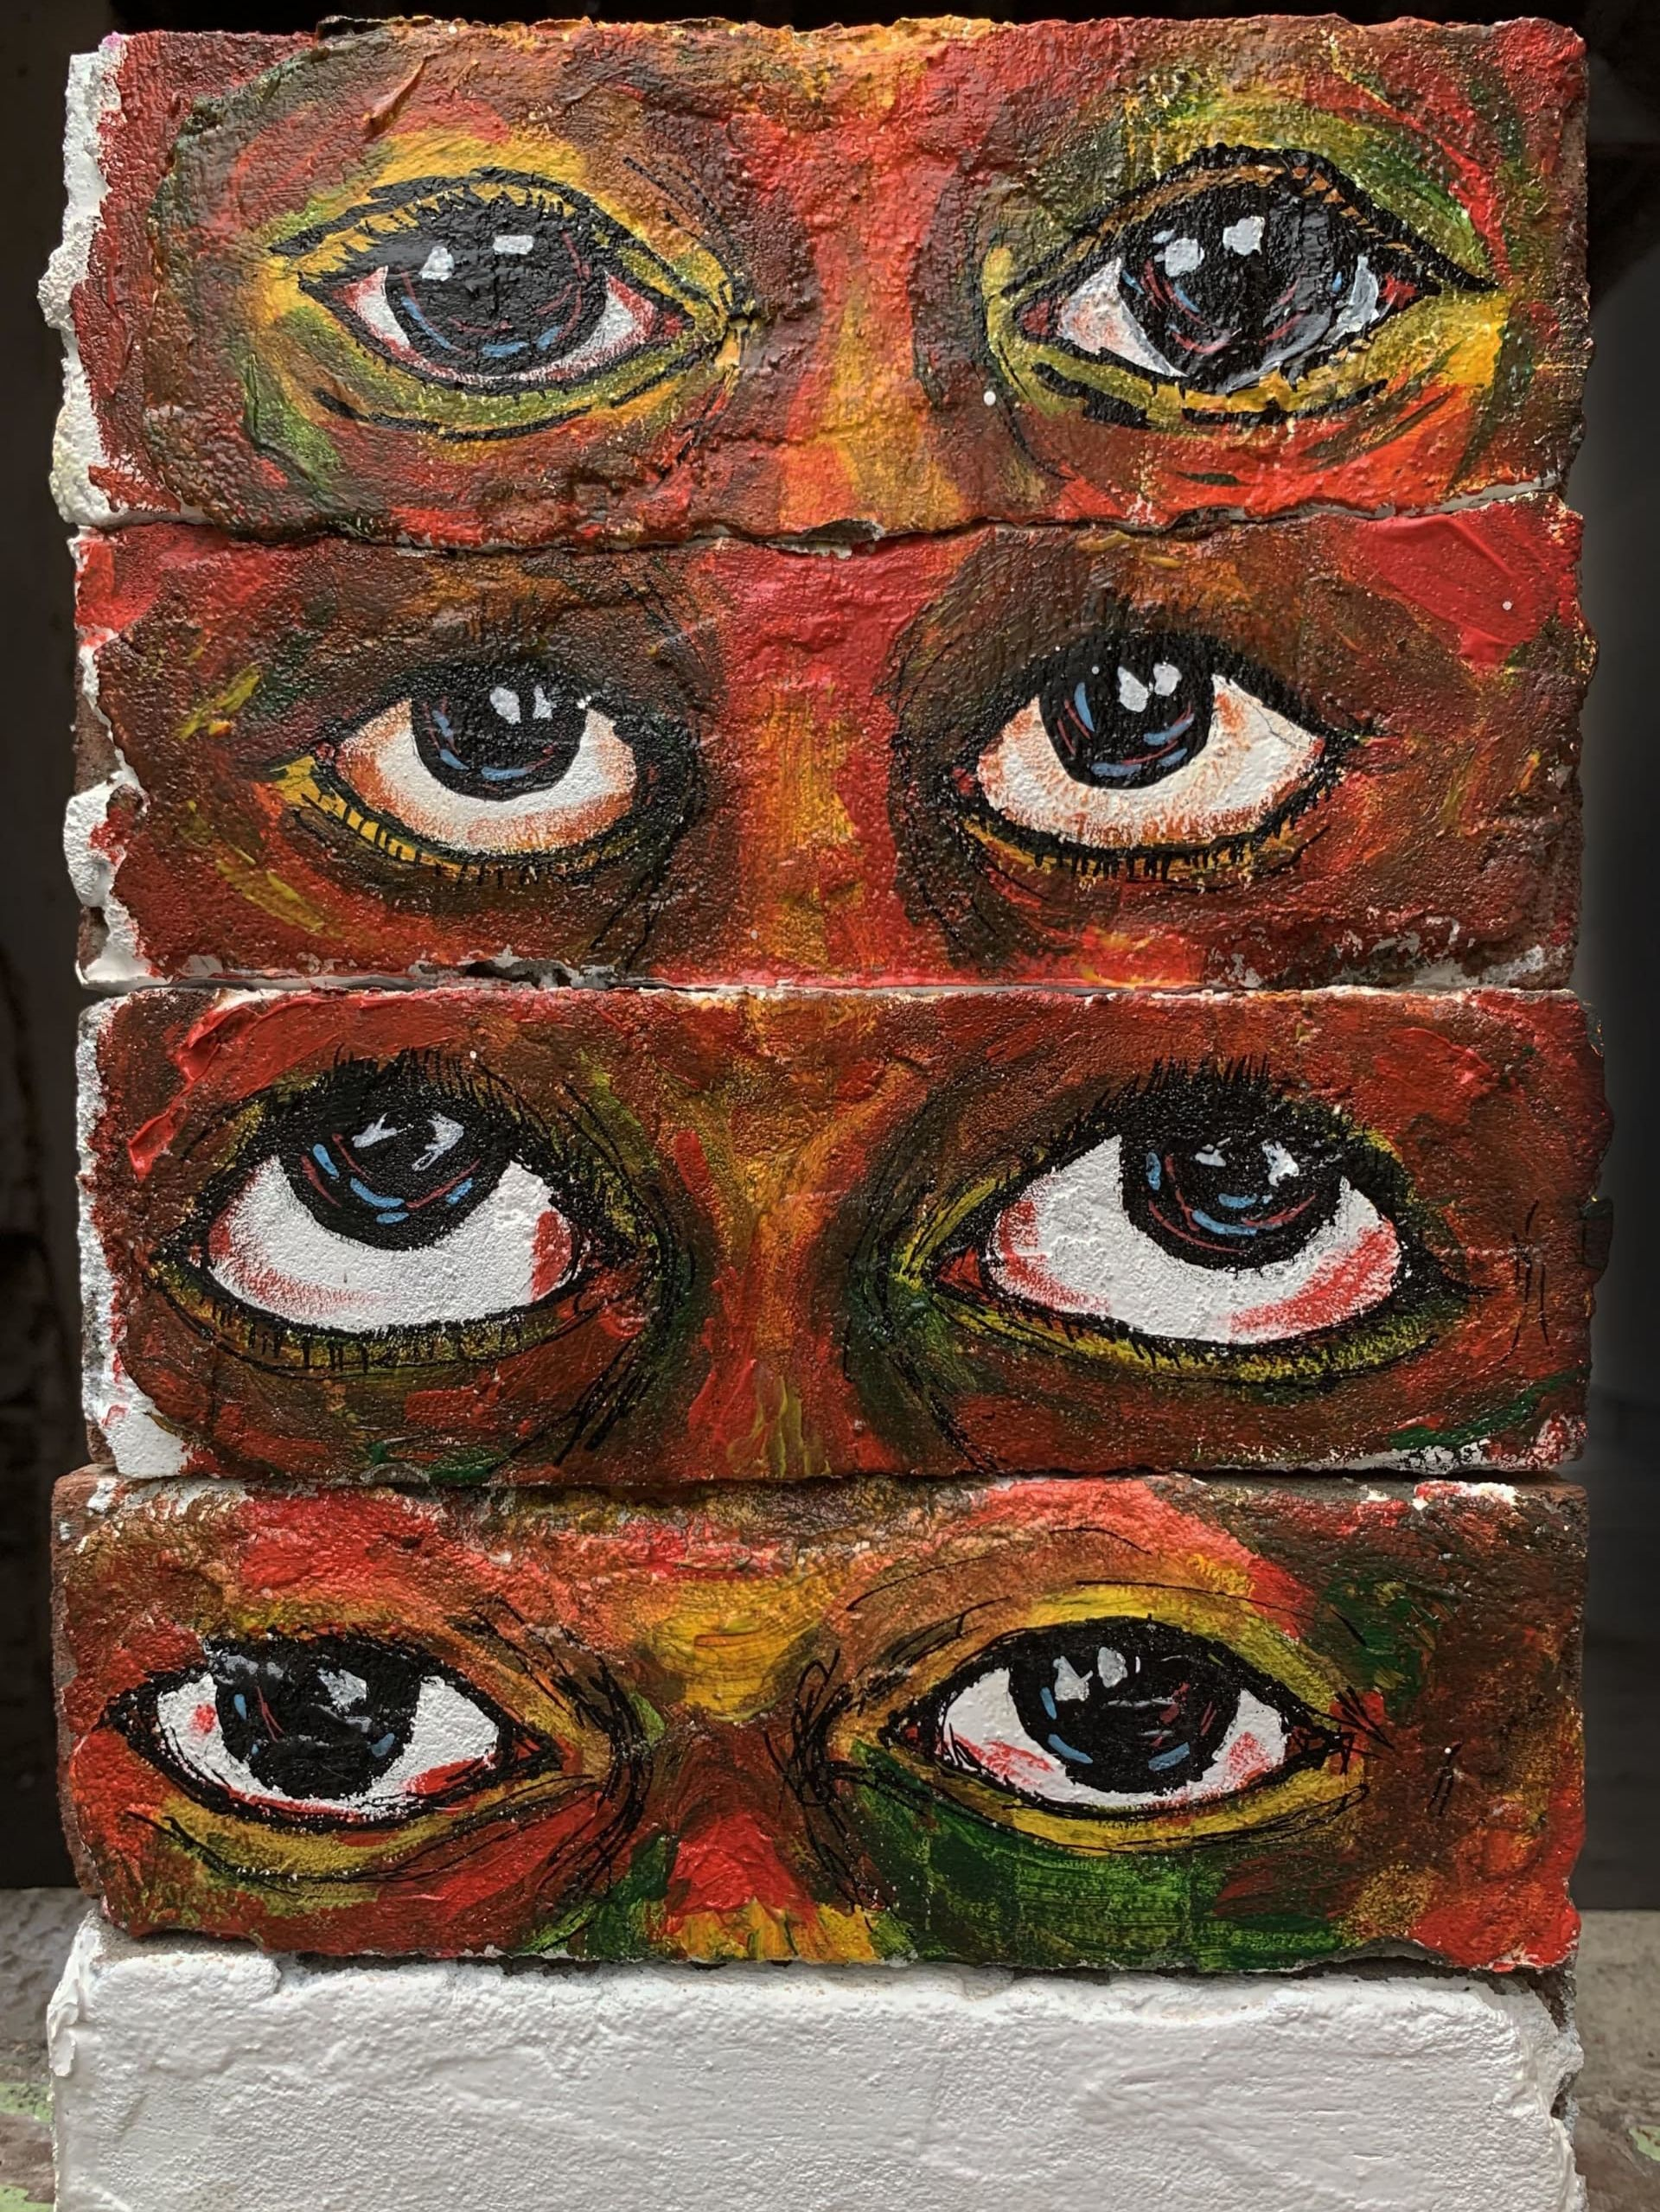 Large scale painting of 4 sets of eyes created using 4 horizontal rows of bricks stacked on top of each other, with intense colours